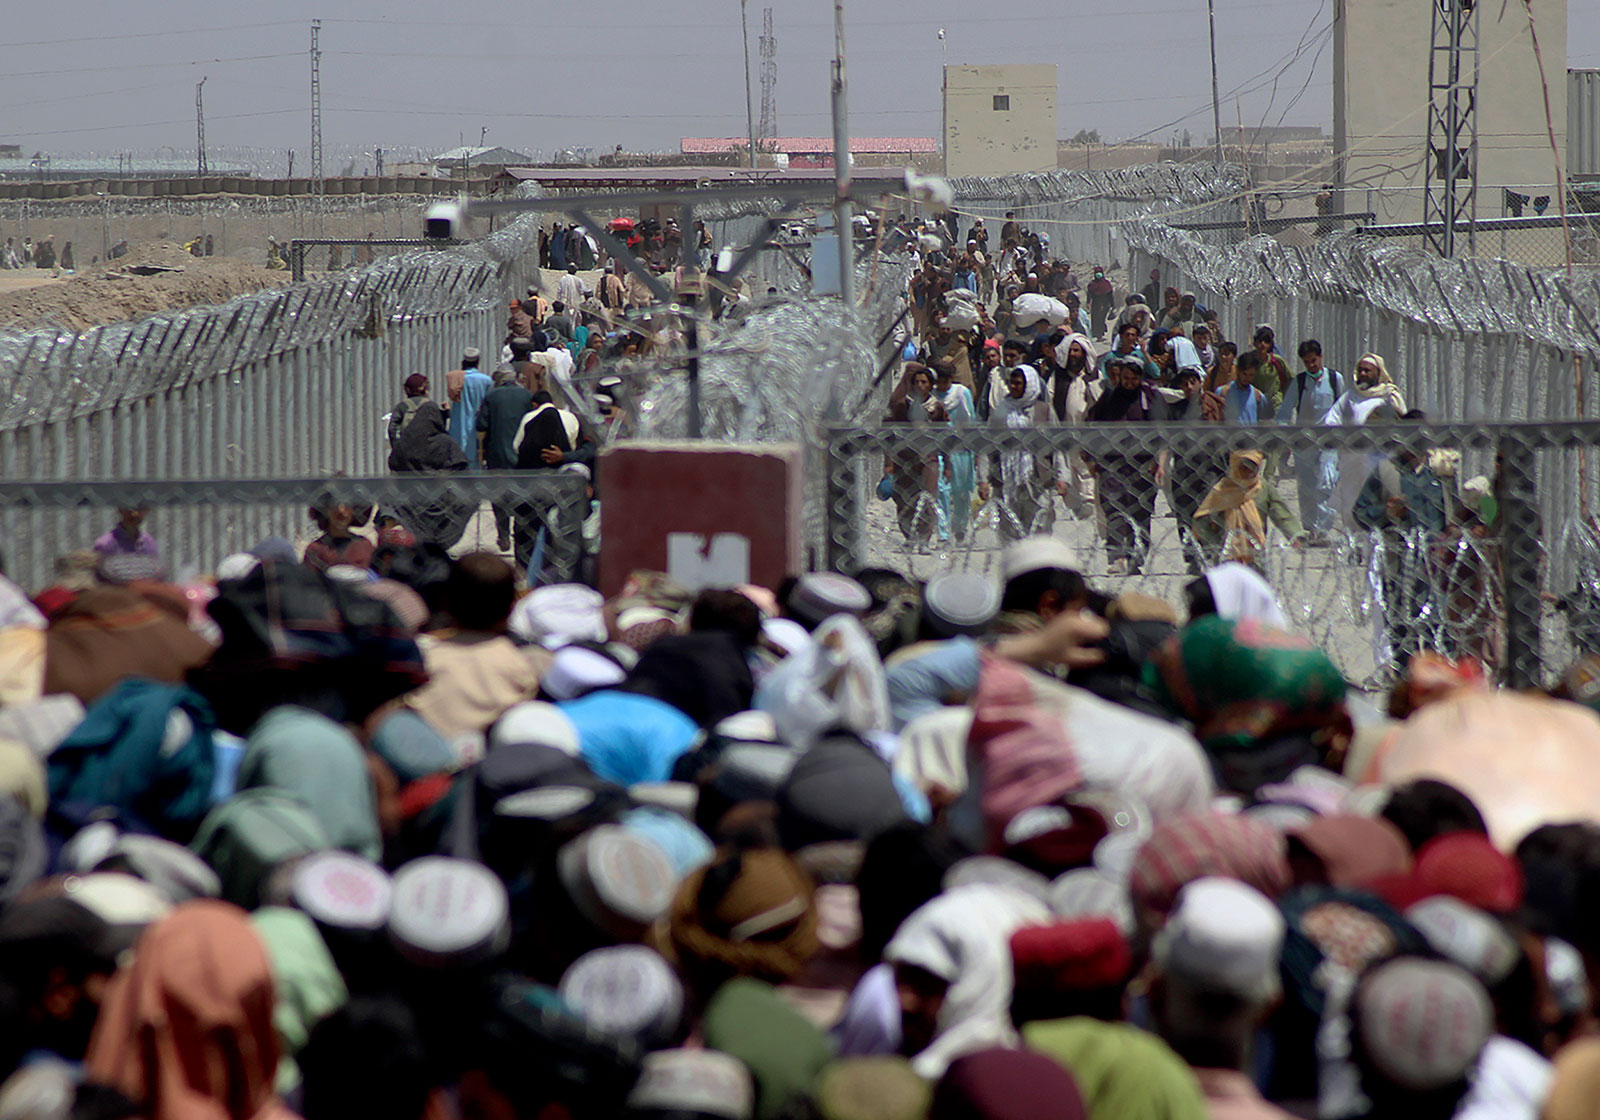 People cross the border between Pakistan and Afghanistan in Chaman, Pakistan, on Friday, August 13.